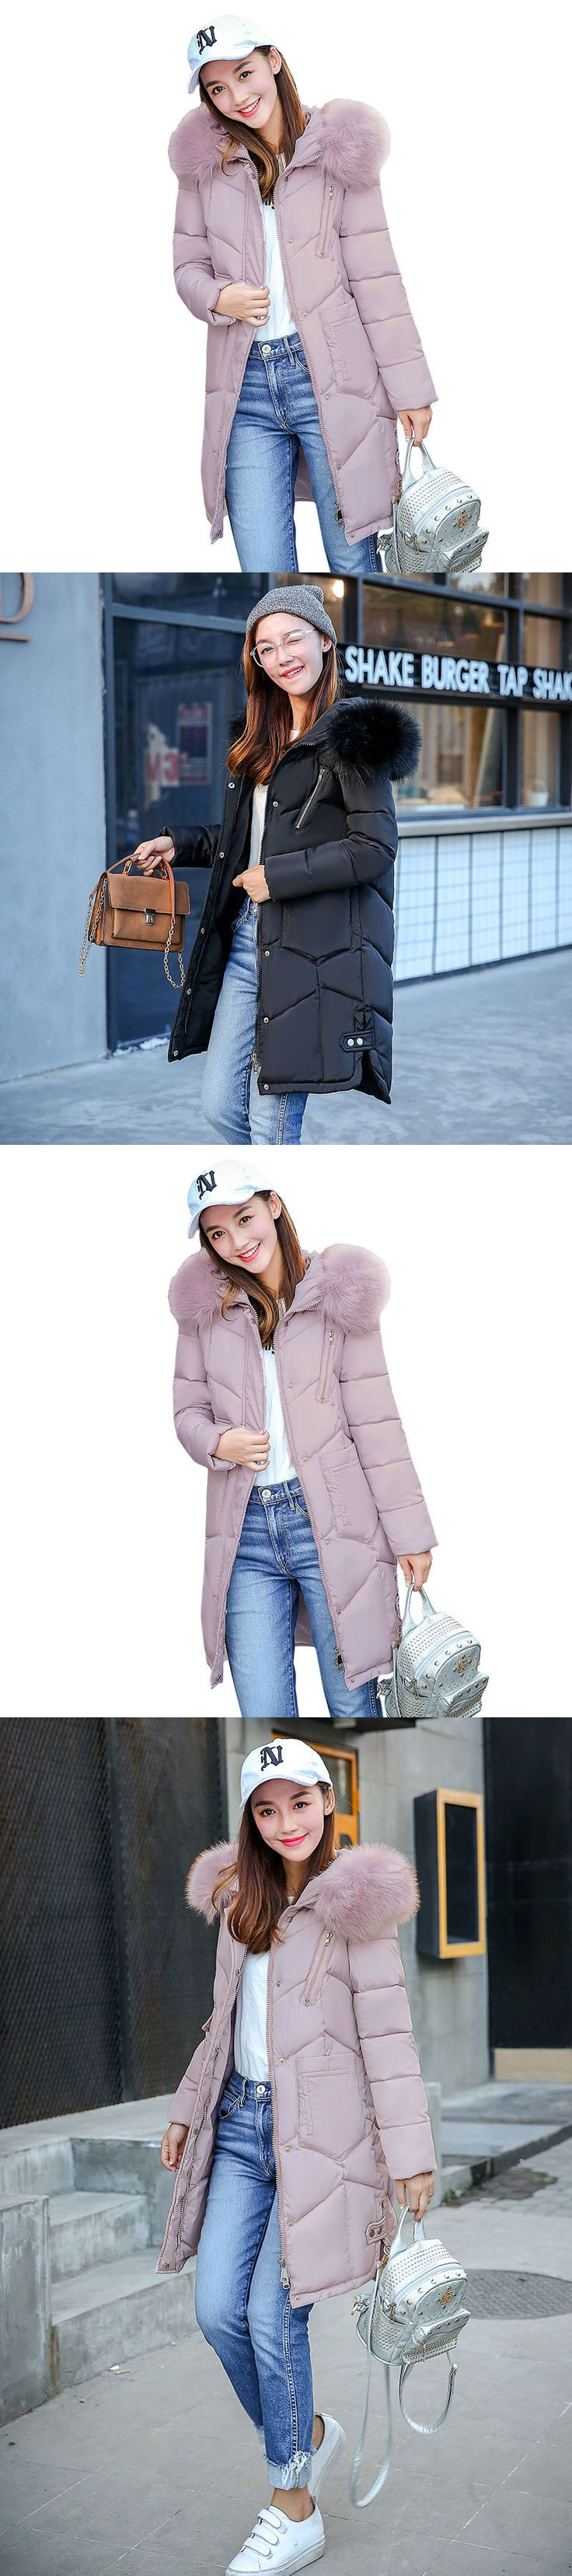 Coats and Jackets 63862: New Women Winter Coat Down Jacket Ladies Fur Hooded Jackets Long Puffer Parka -> BUY IT NOW ONLY: $32.88 on eBay!